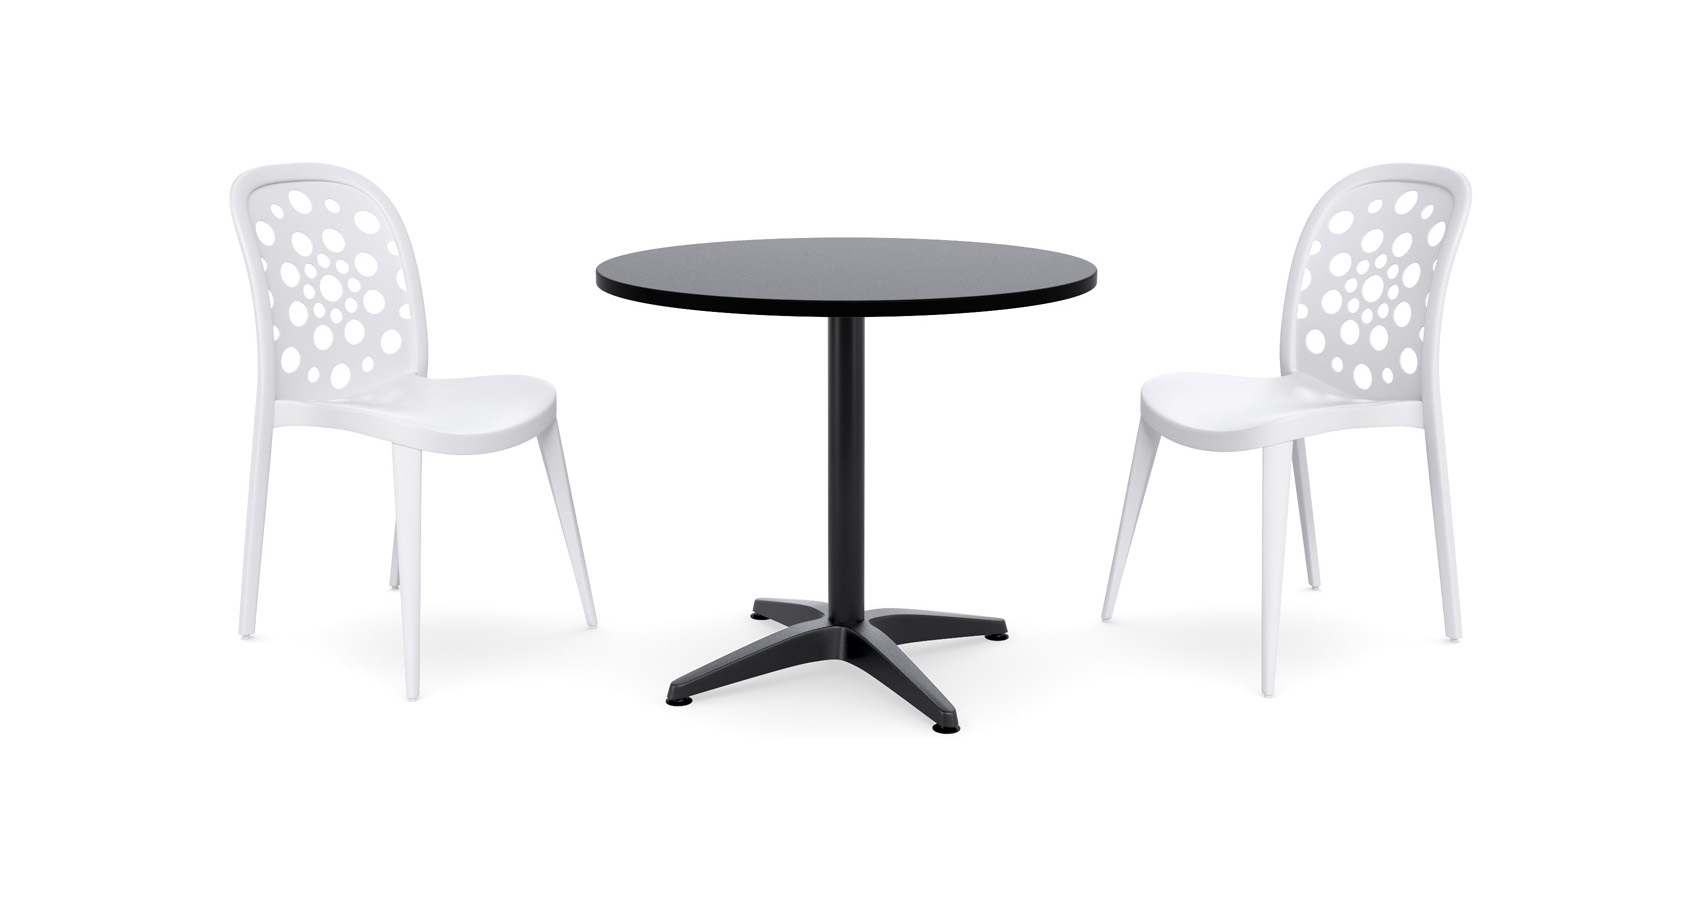 Moda Round Table Setting with Pop chairs